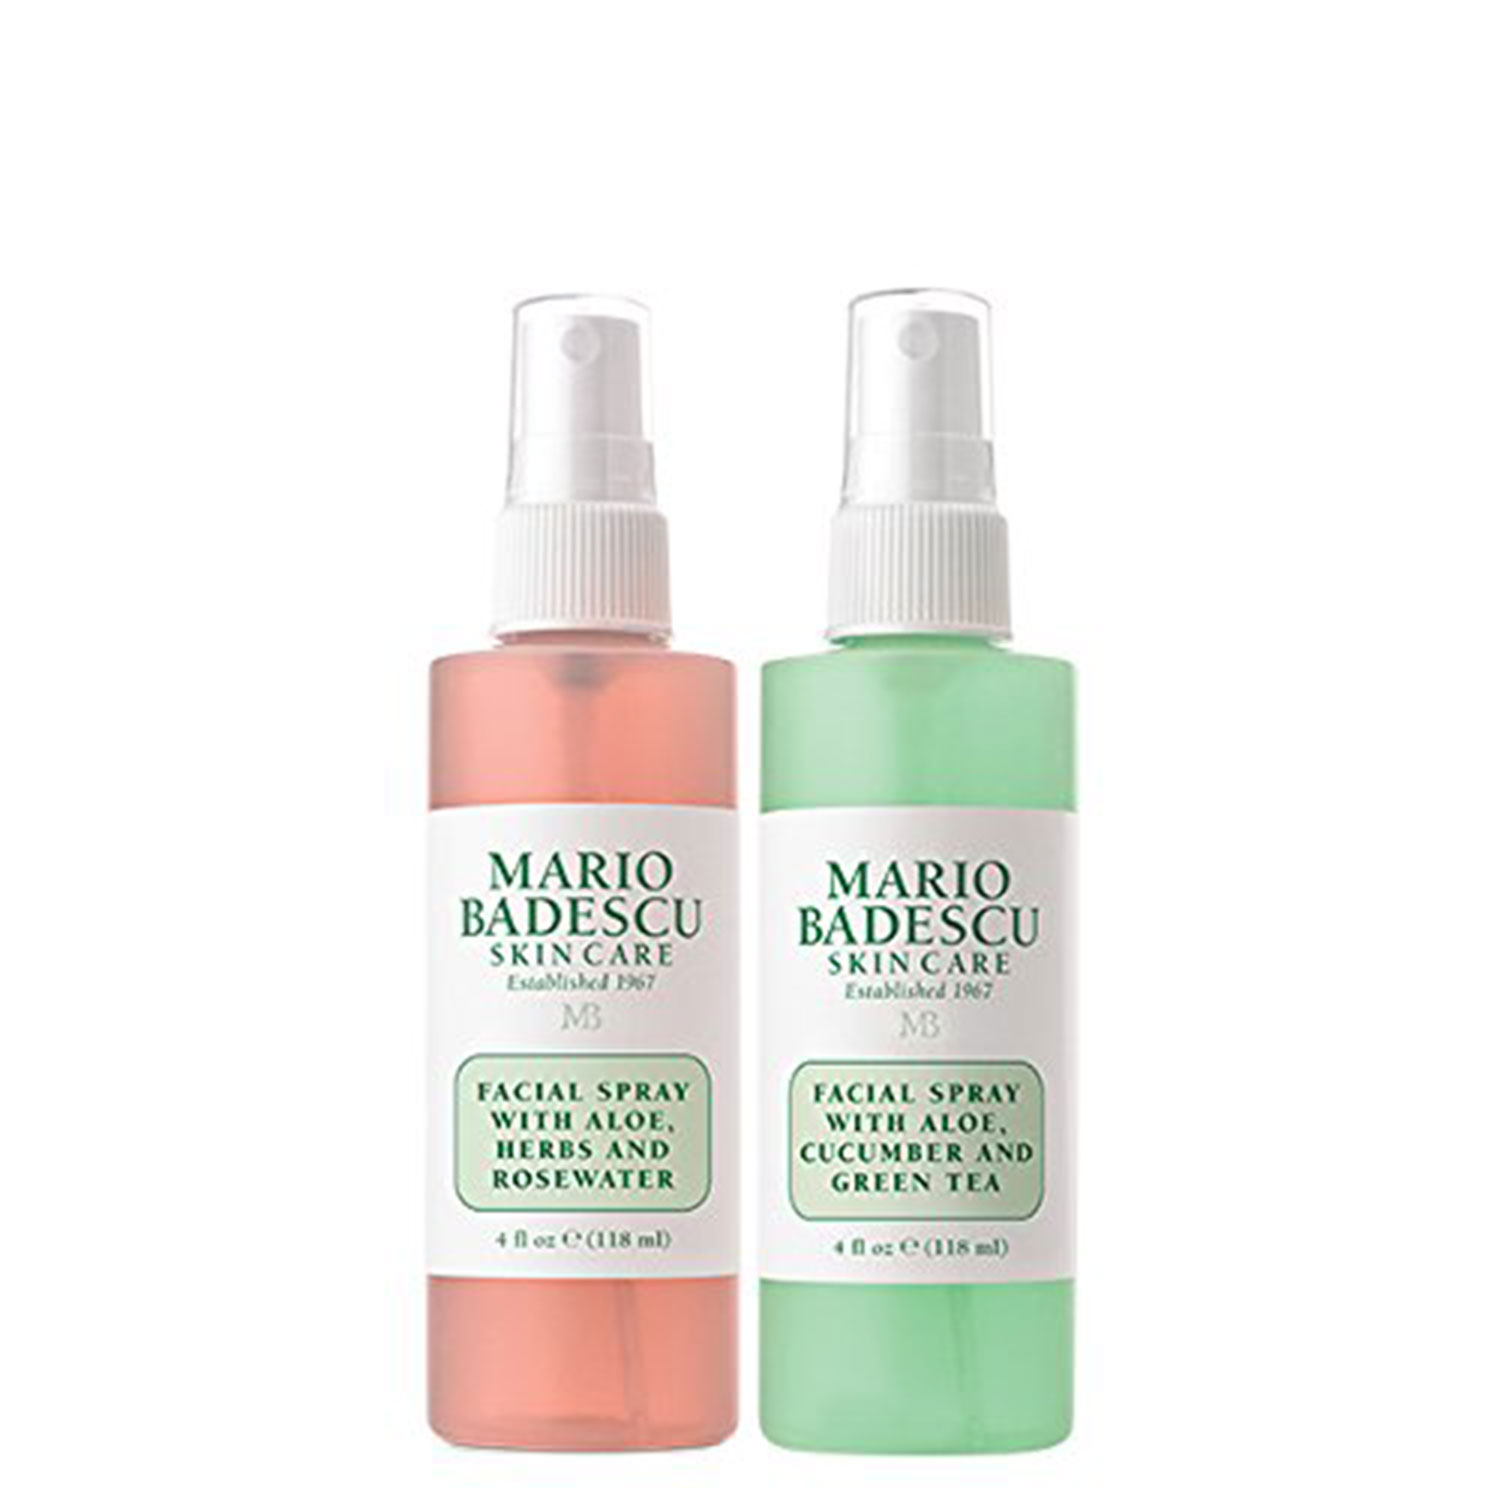 mario badescu facial spray